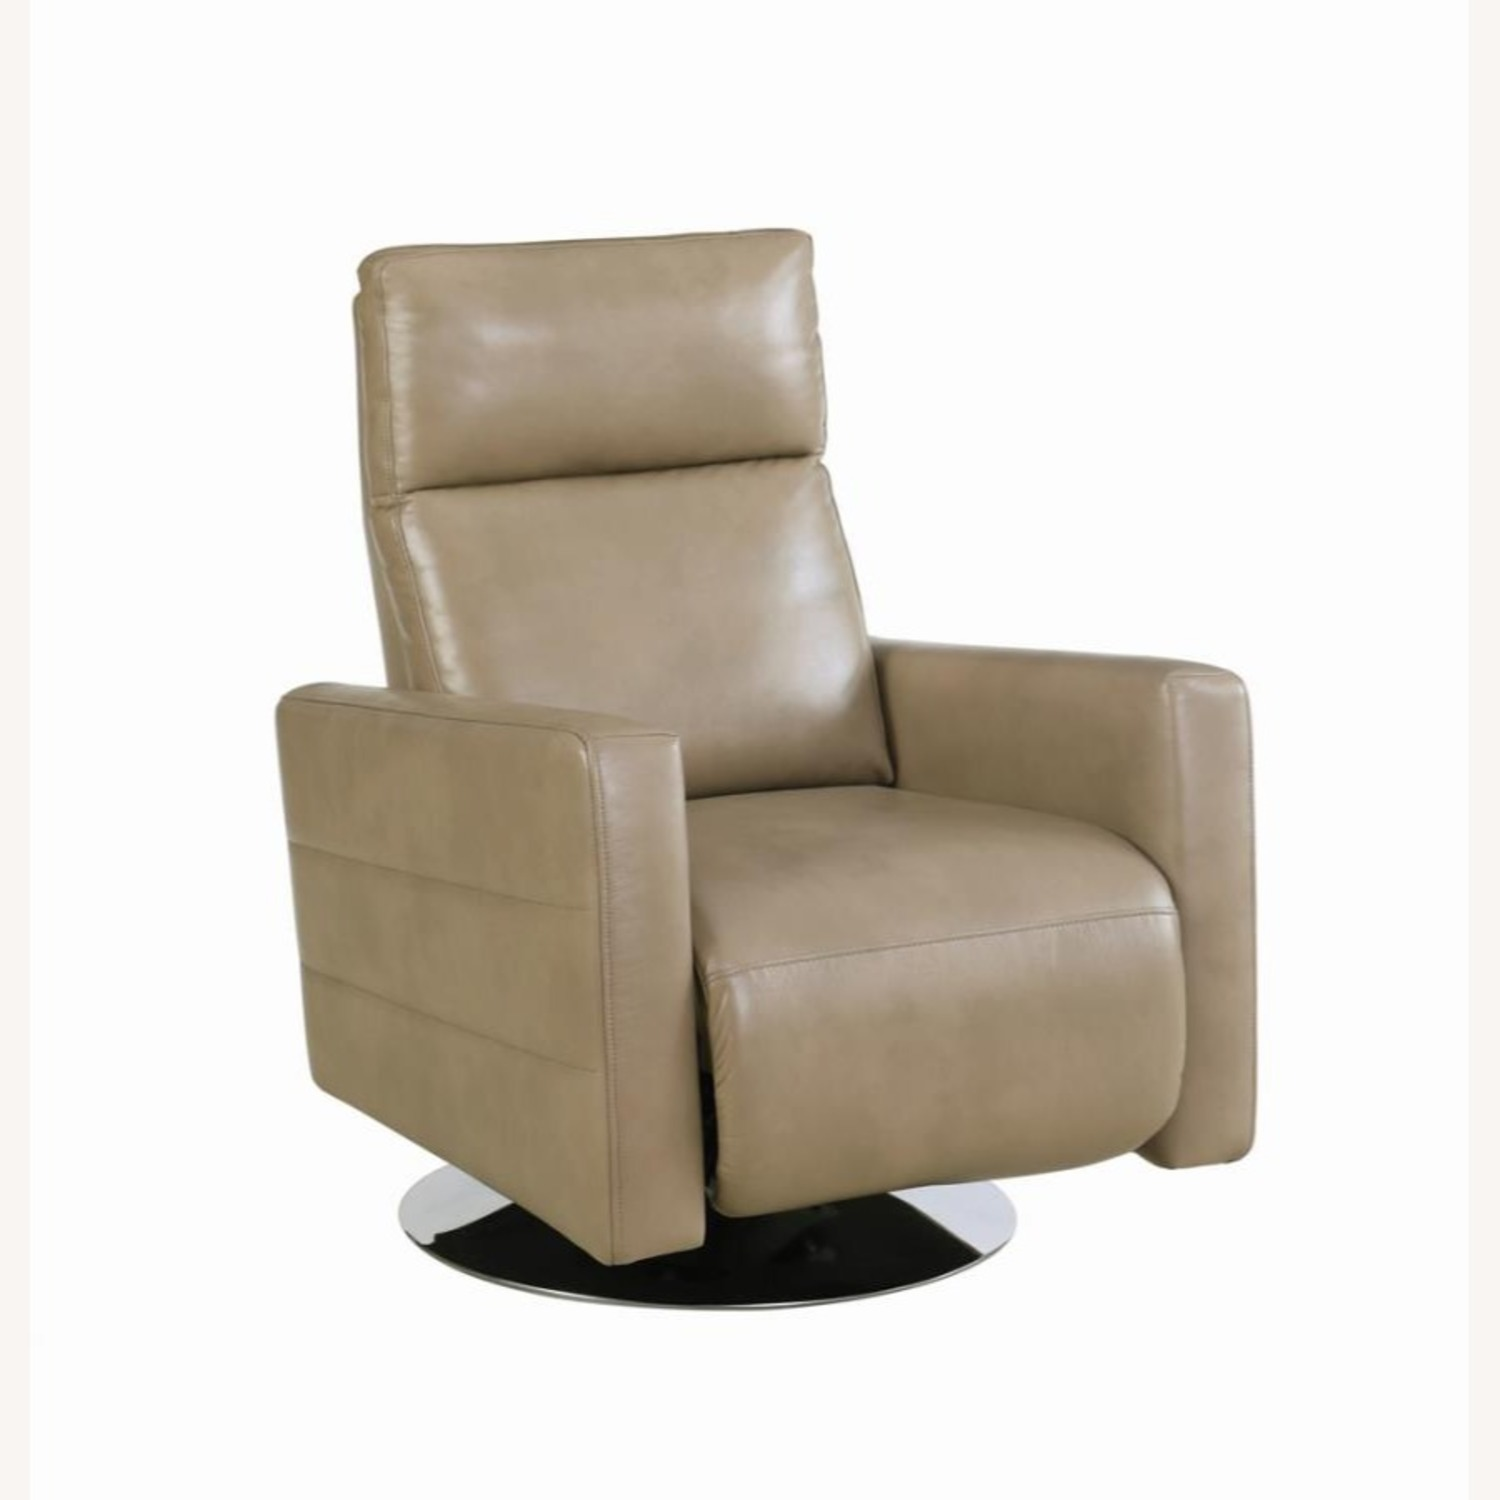 Swivel Recliner Upholstered In Taupe Performance - image-0